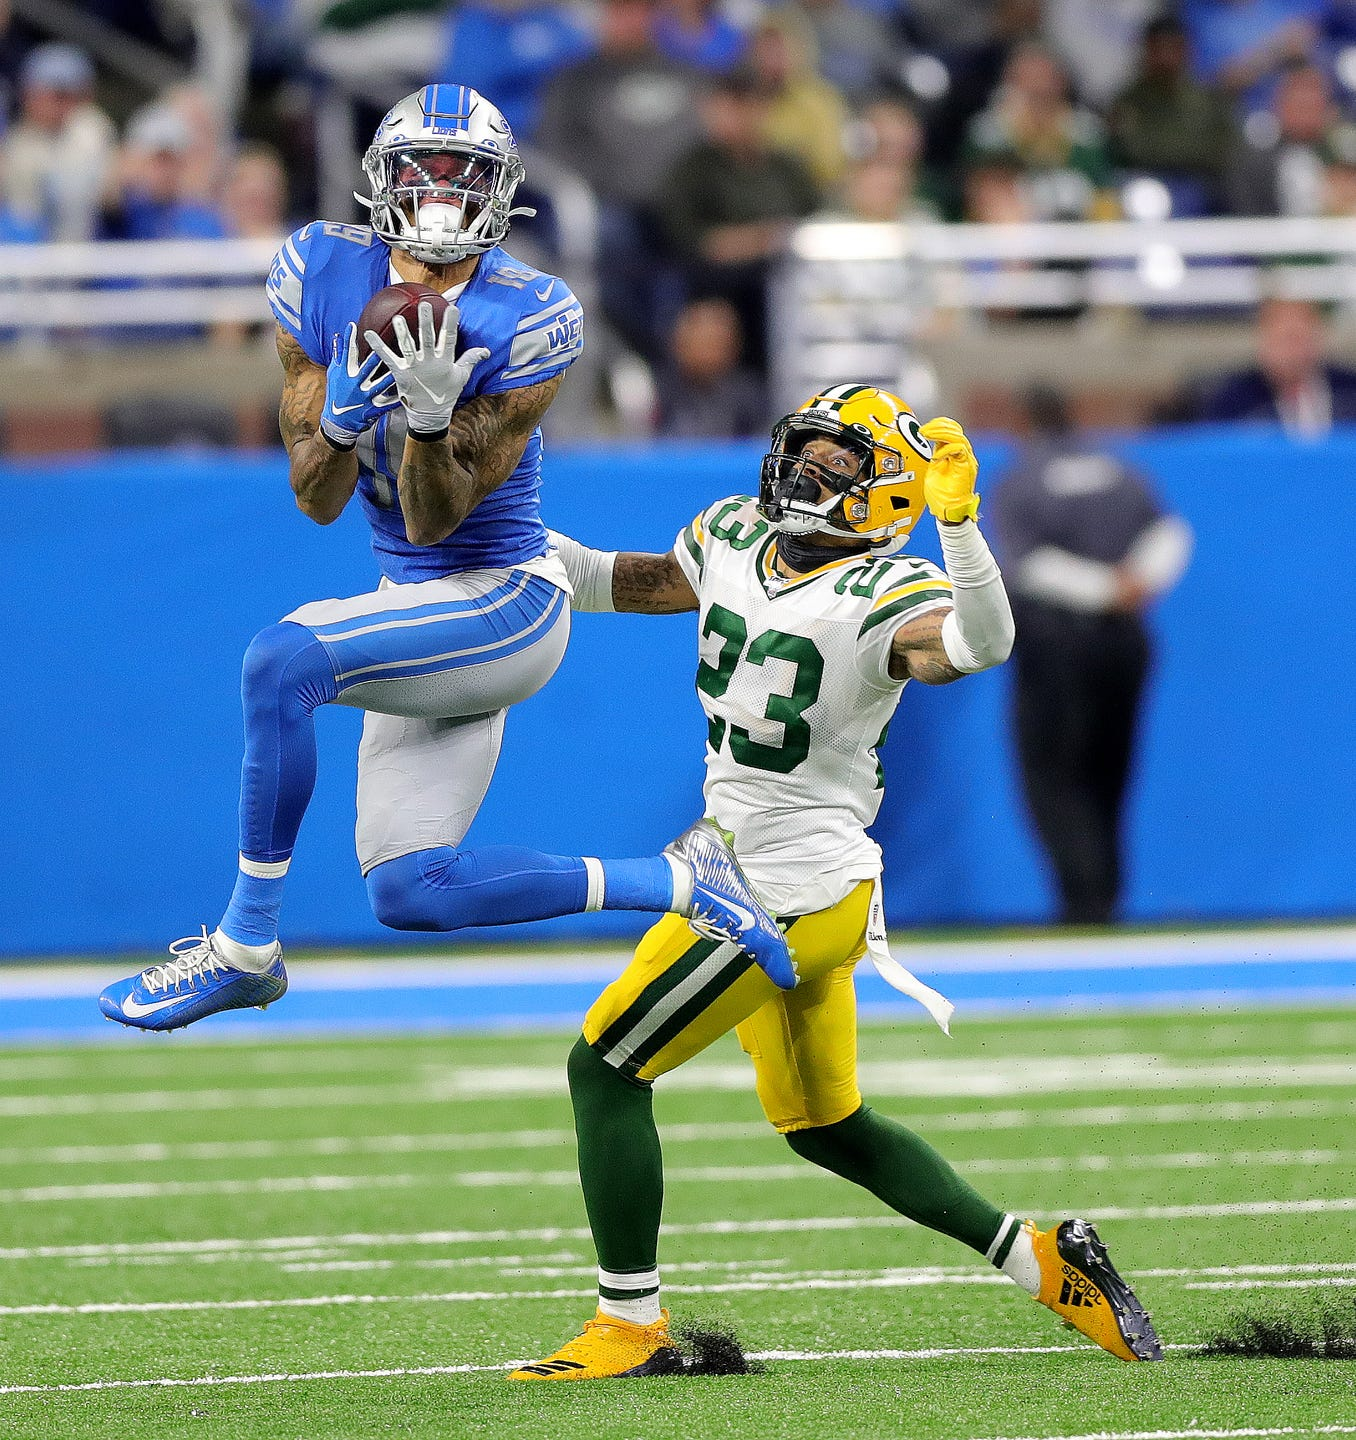 Detroit Lions receiver Kenny Golladay makes a catch against Green Bay Packers cornerback Jaire Alexander during the first half Sunday, Dec. 29, 2019 at Ford Field.